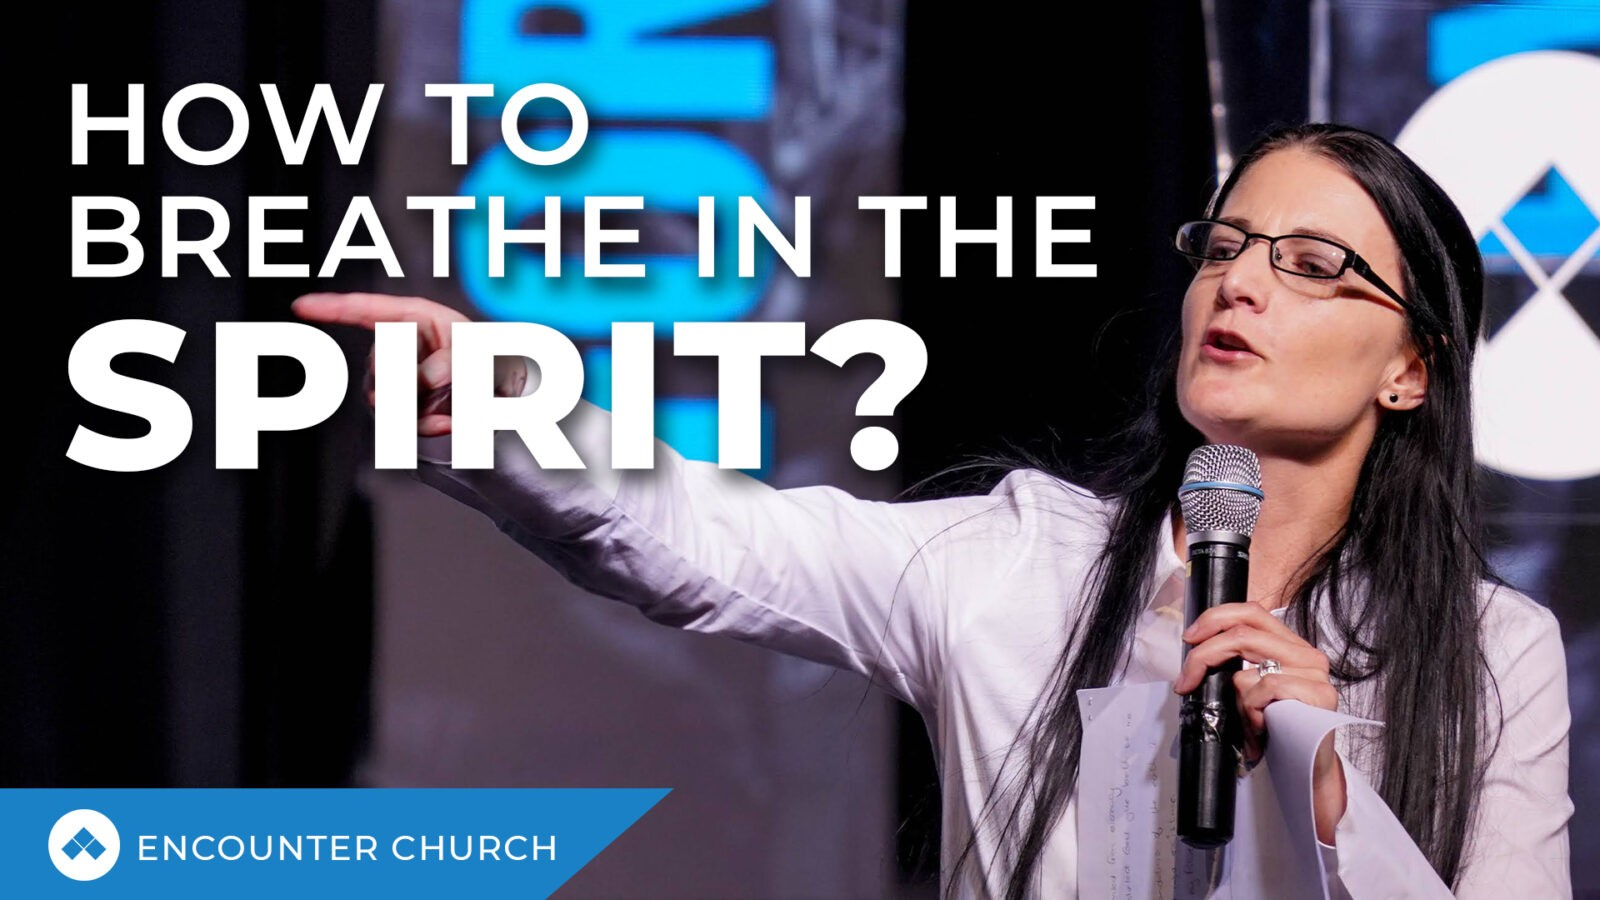 How To Breathe In The Spirit?